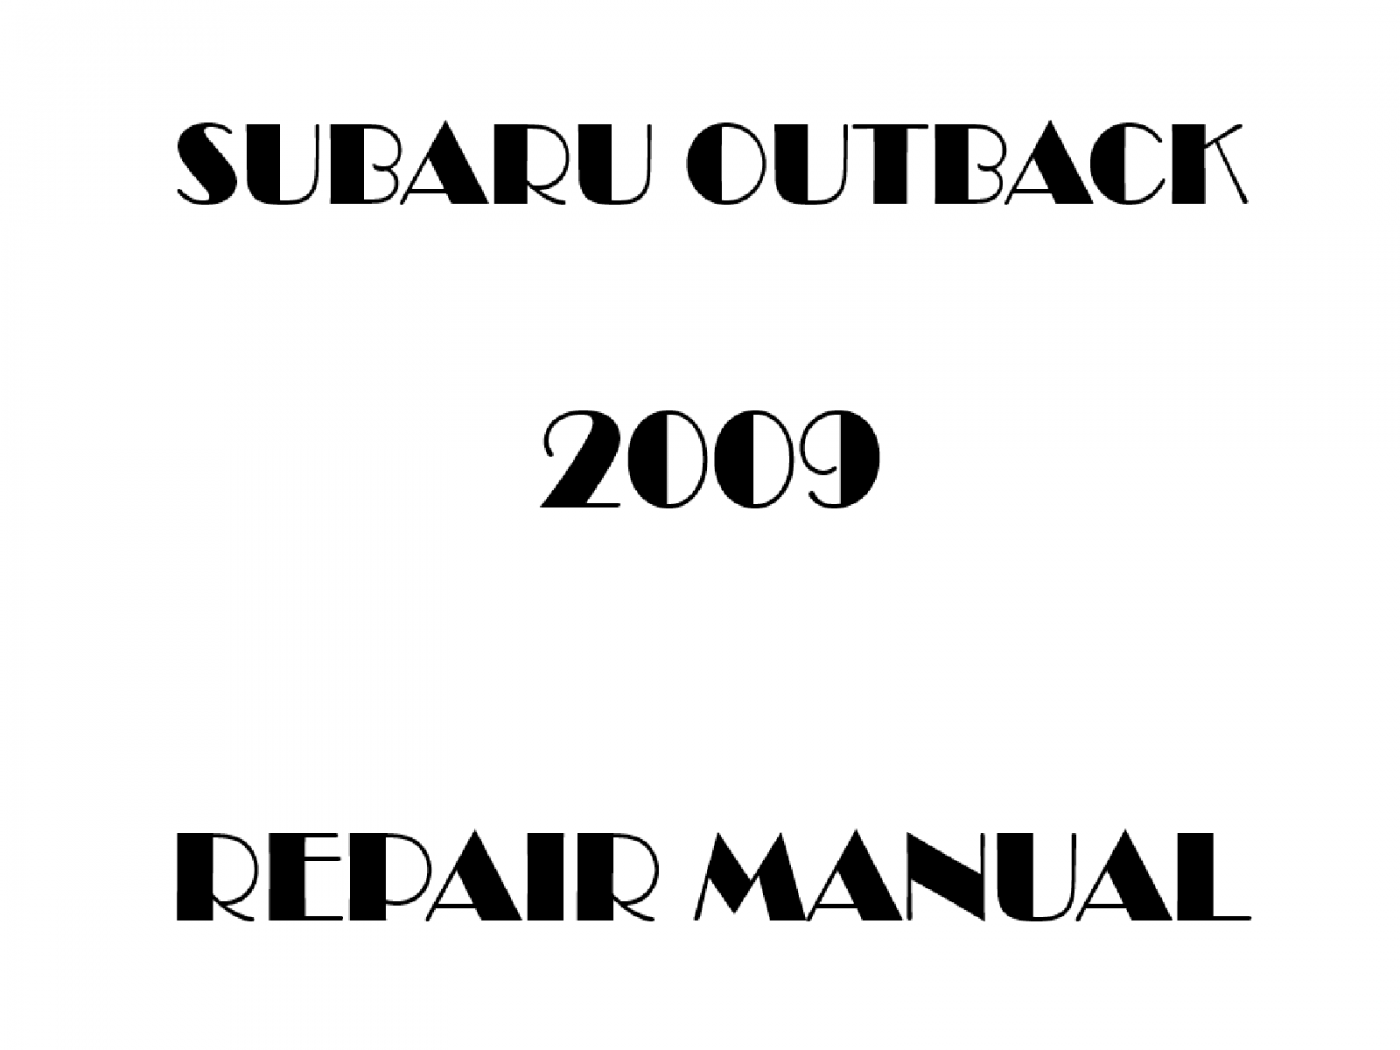 2009 Subaru Outback repair manual